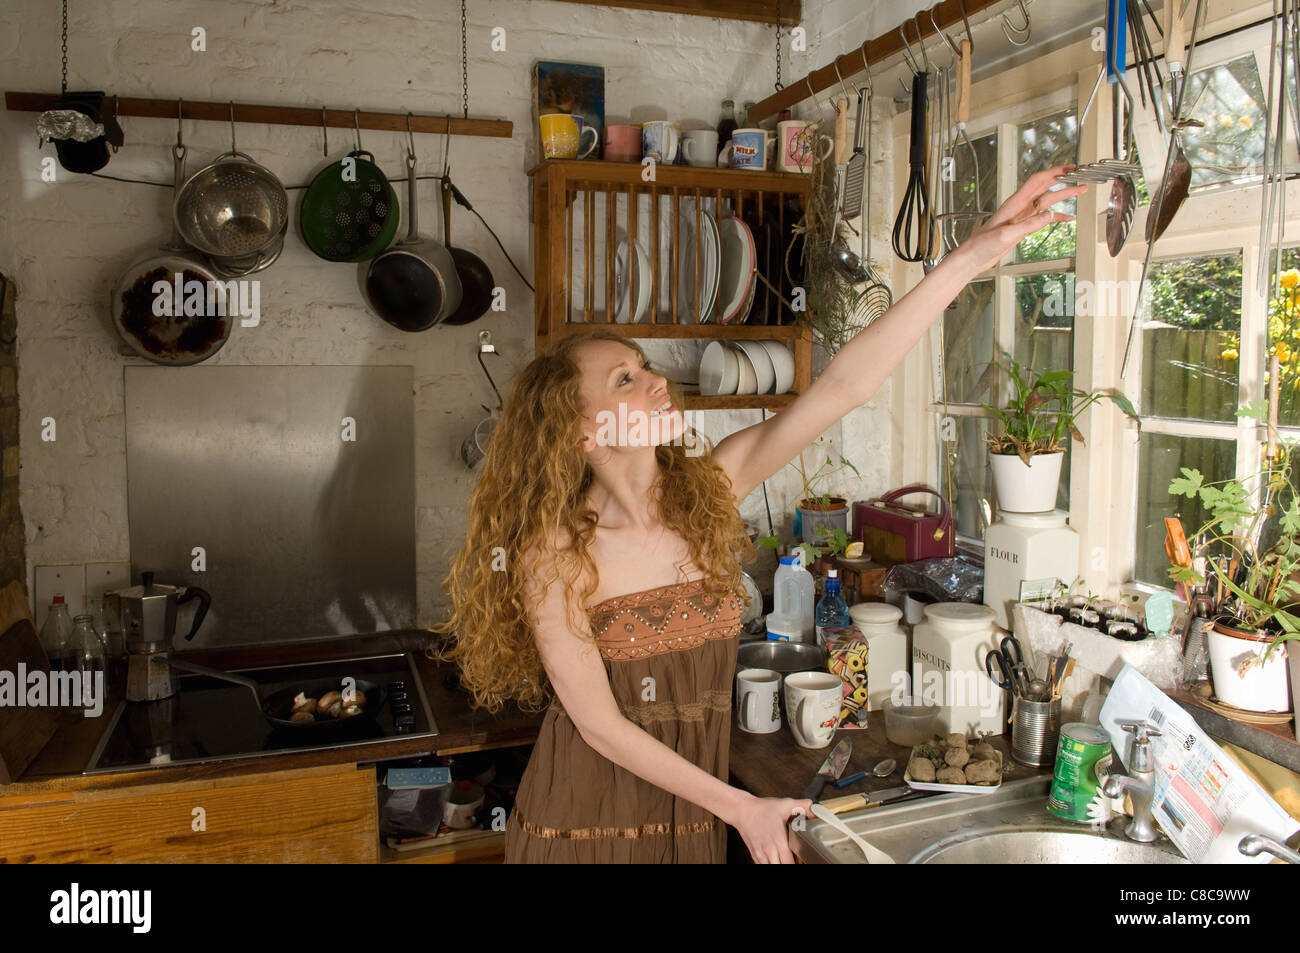 Woman selecting utensil in kitchen - Stock Image